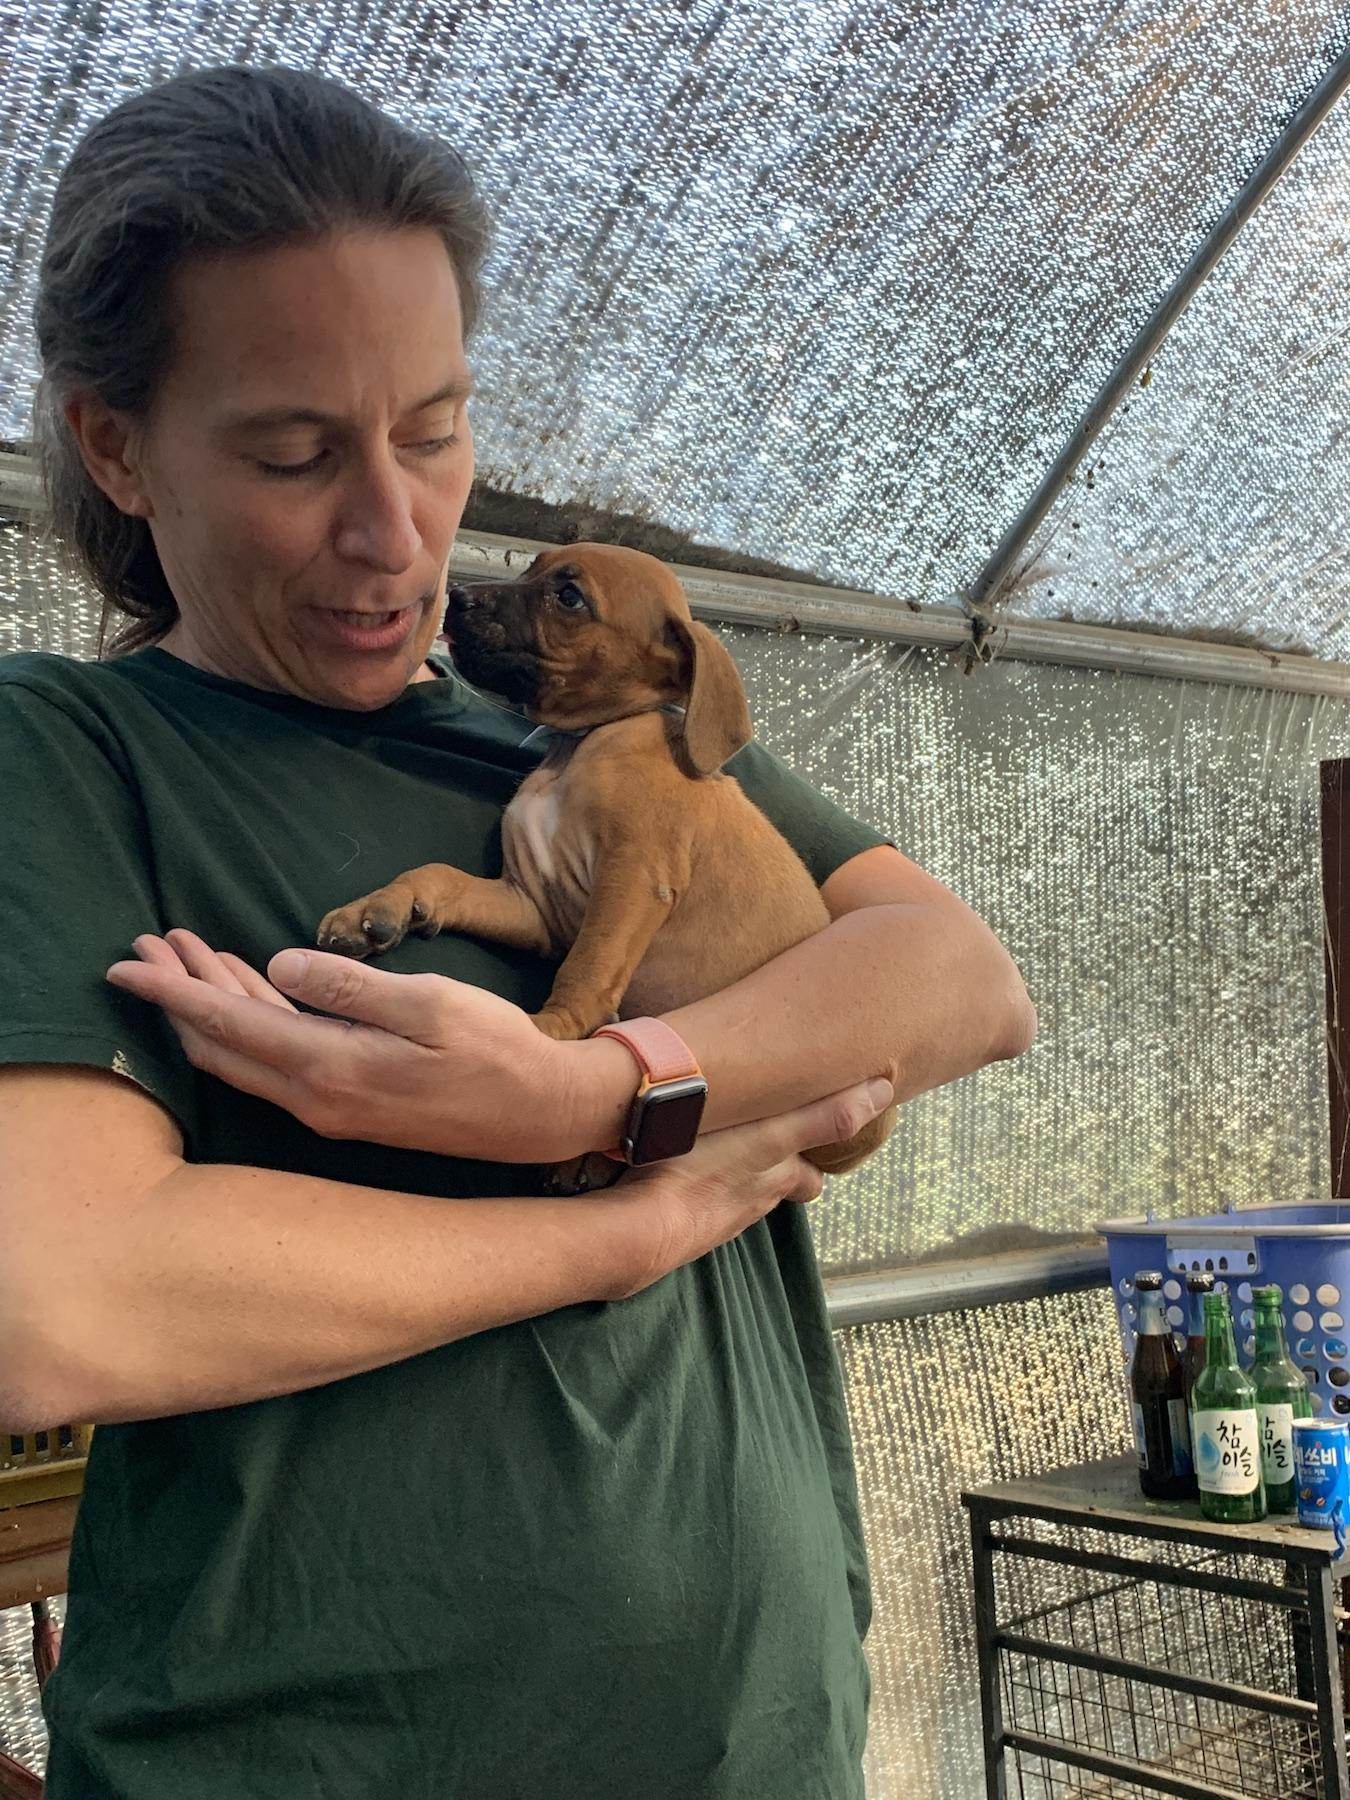 Hsi Volunteer On Farm With Puppy